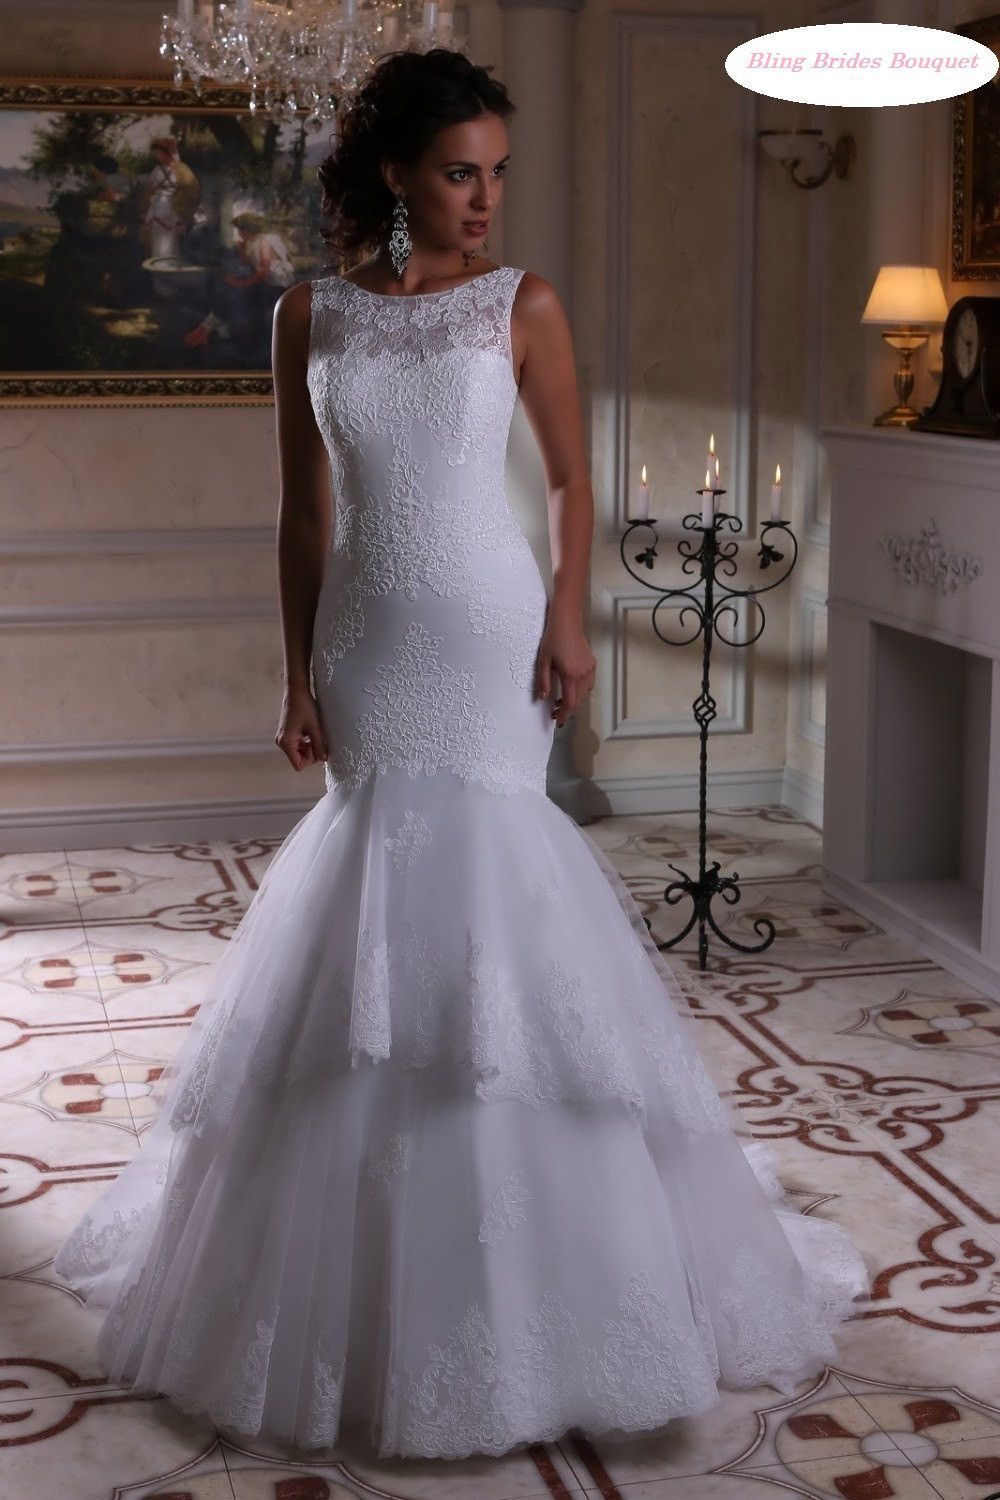 Tiered mermaid wedding dresses at bling brides bouquet online bridal